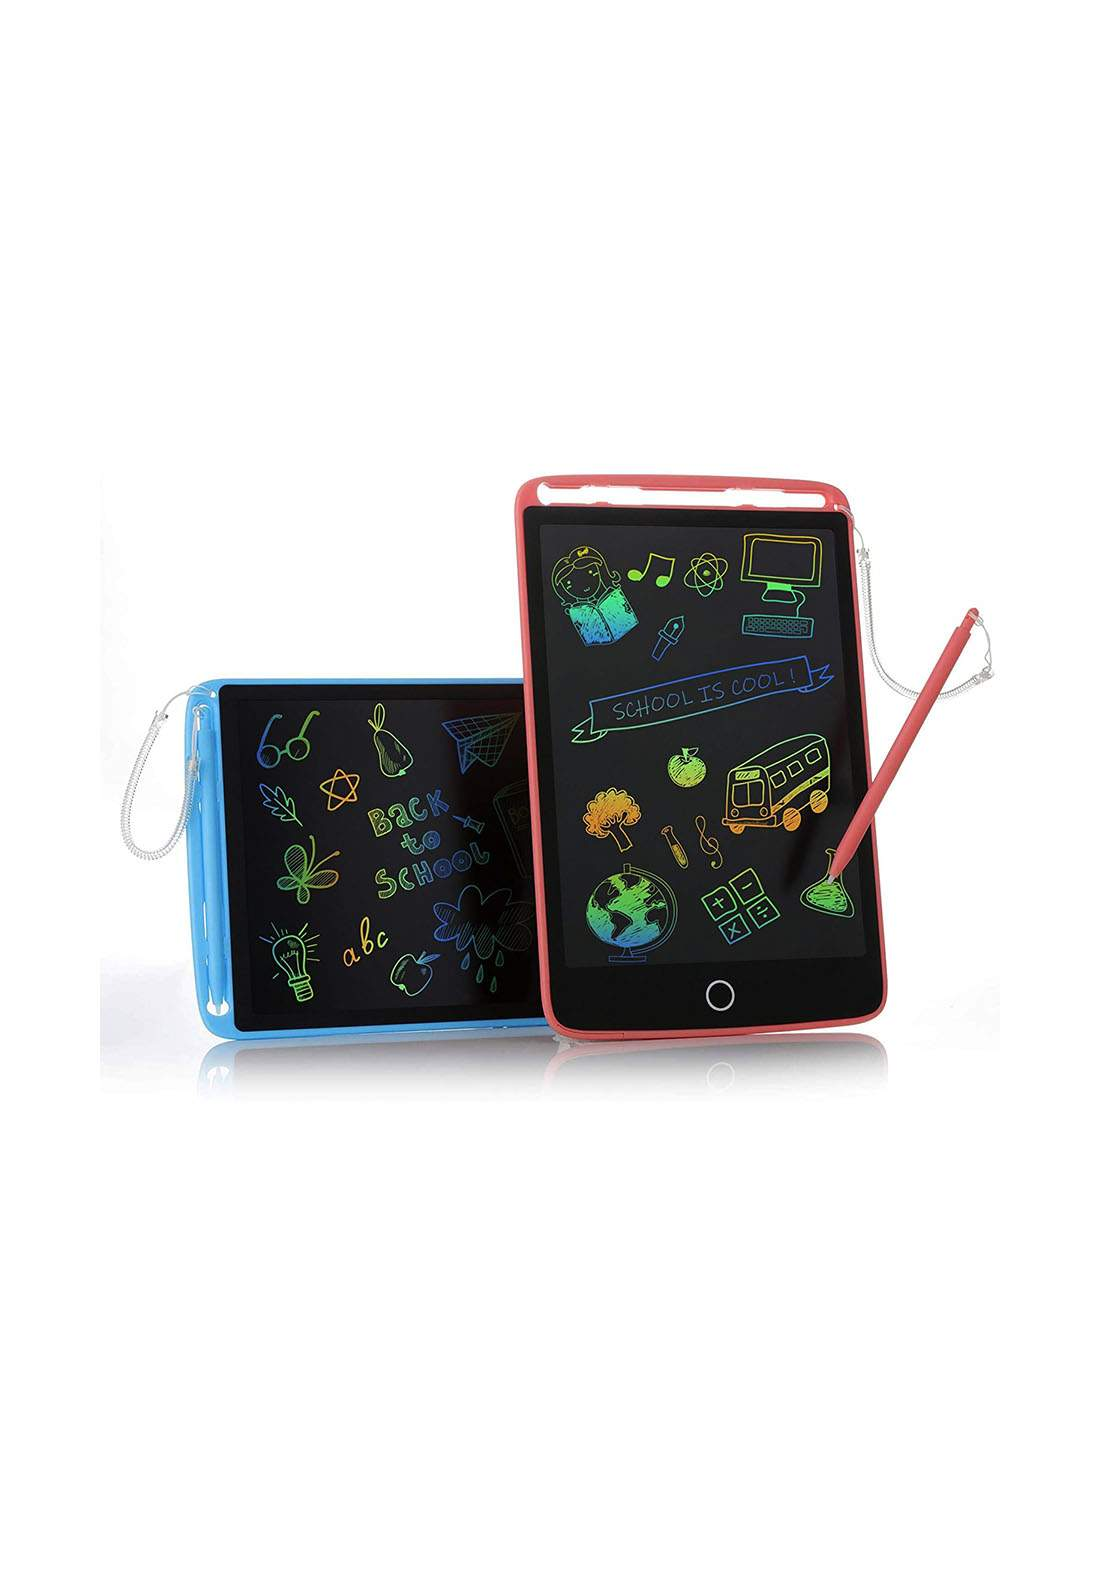 Kidwill Educational Toy Tablet LCD Writing Colorful Screen Board 8.5inch سبورة ذكية